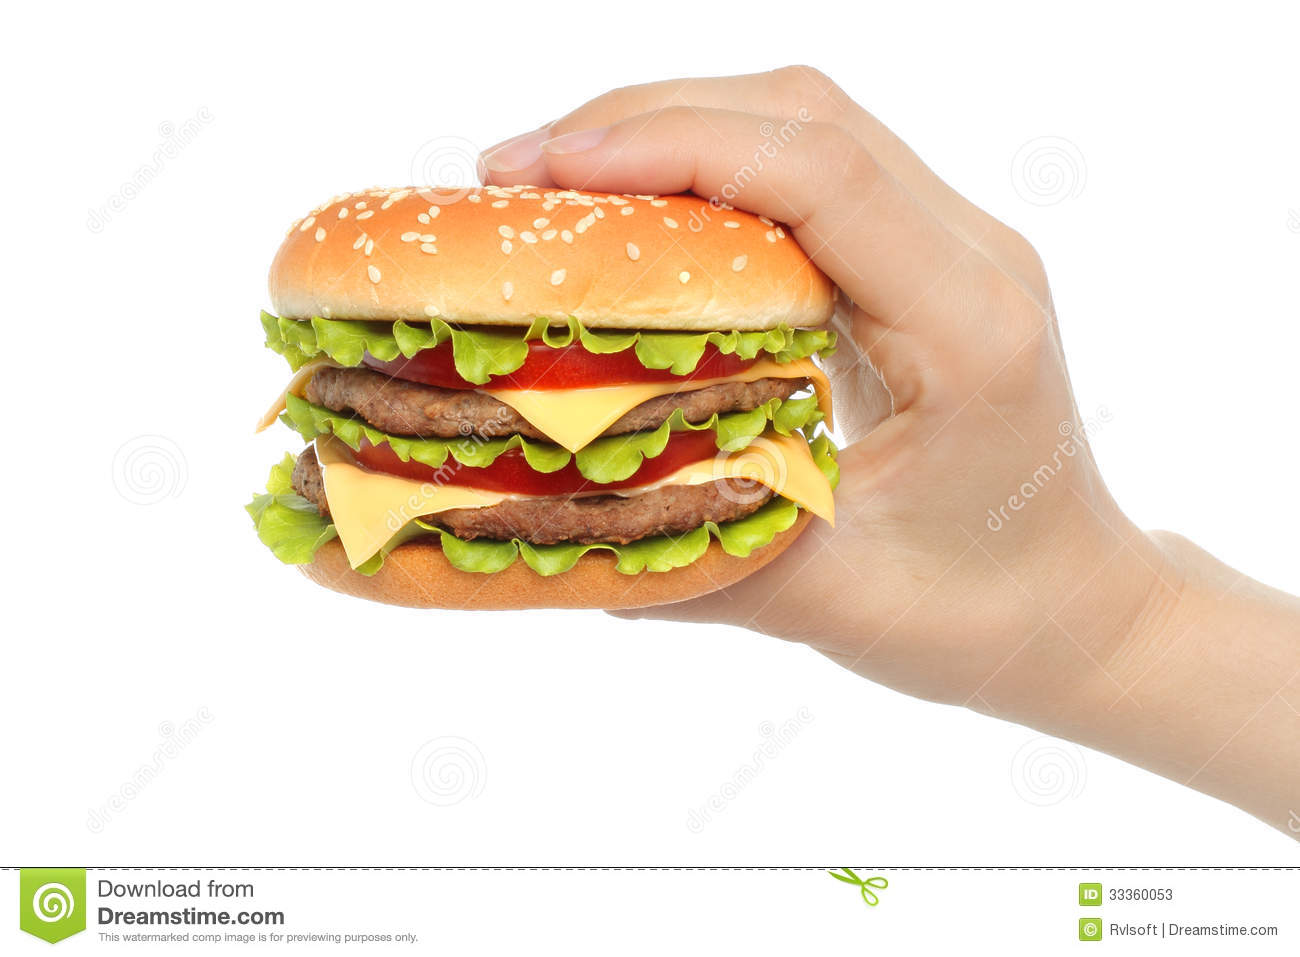 Best Fast Food To Eat When Hungry